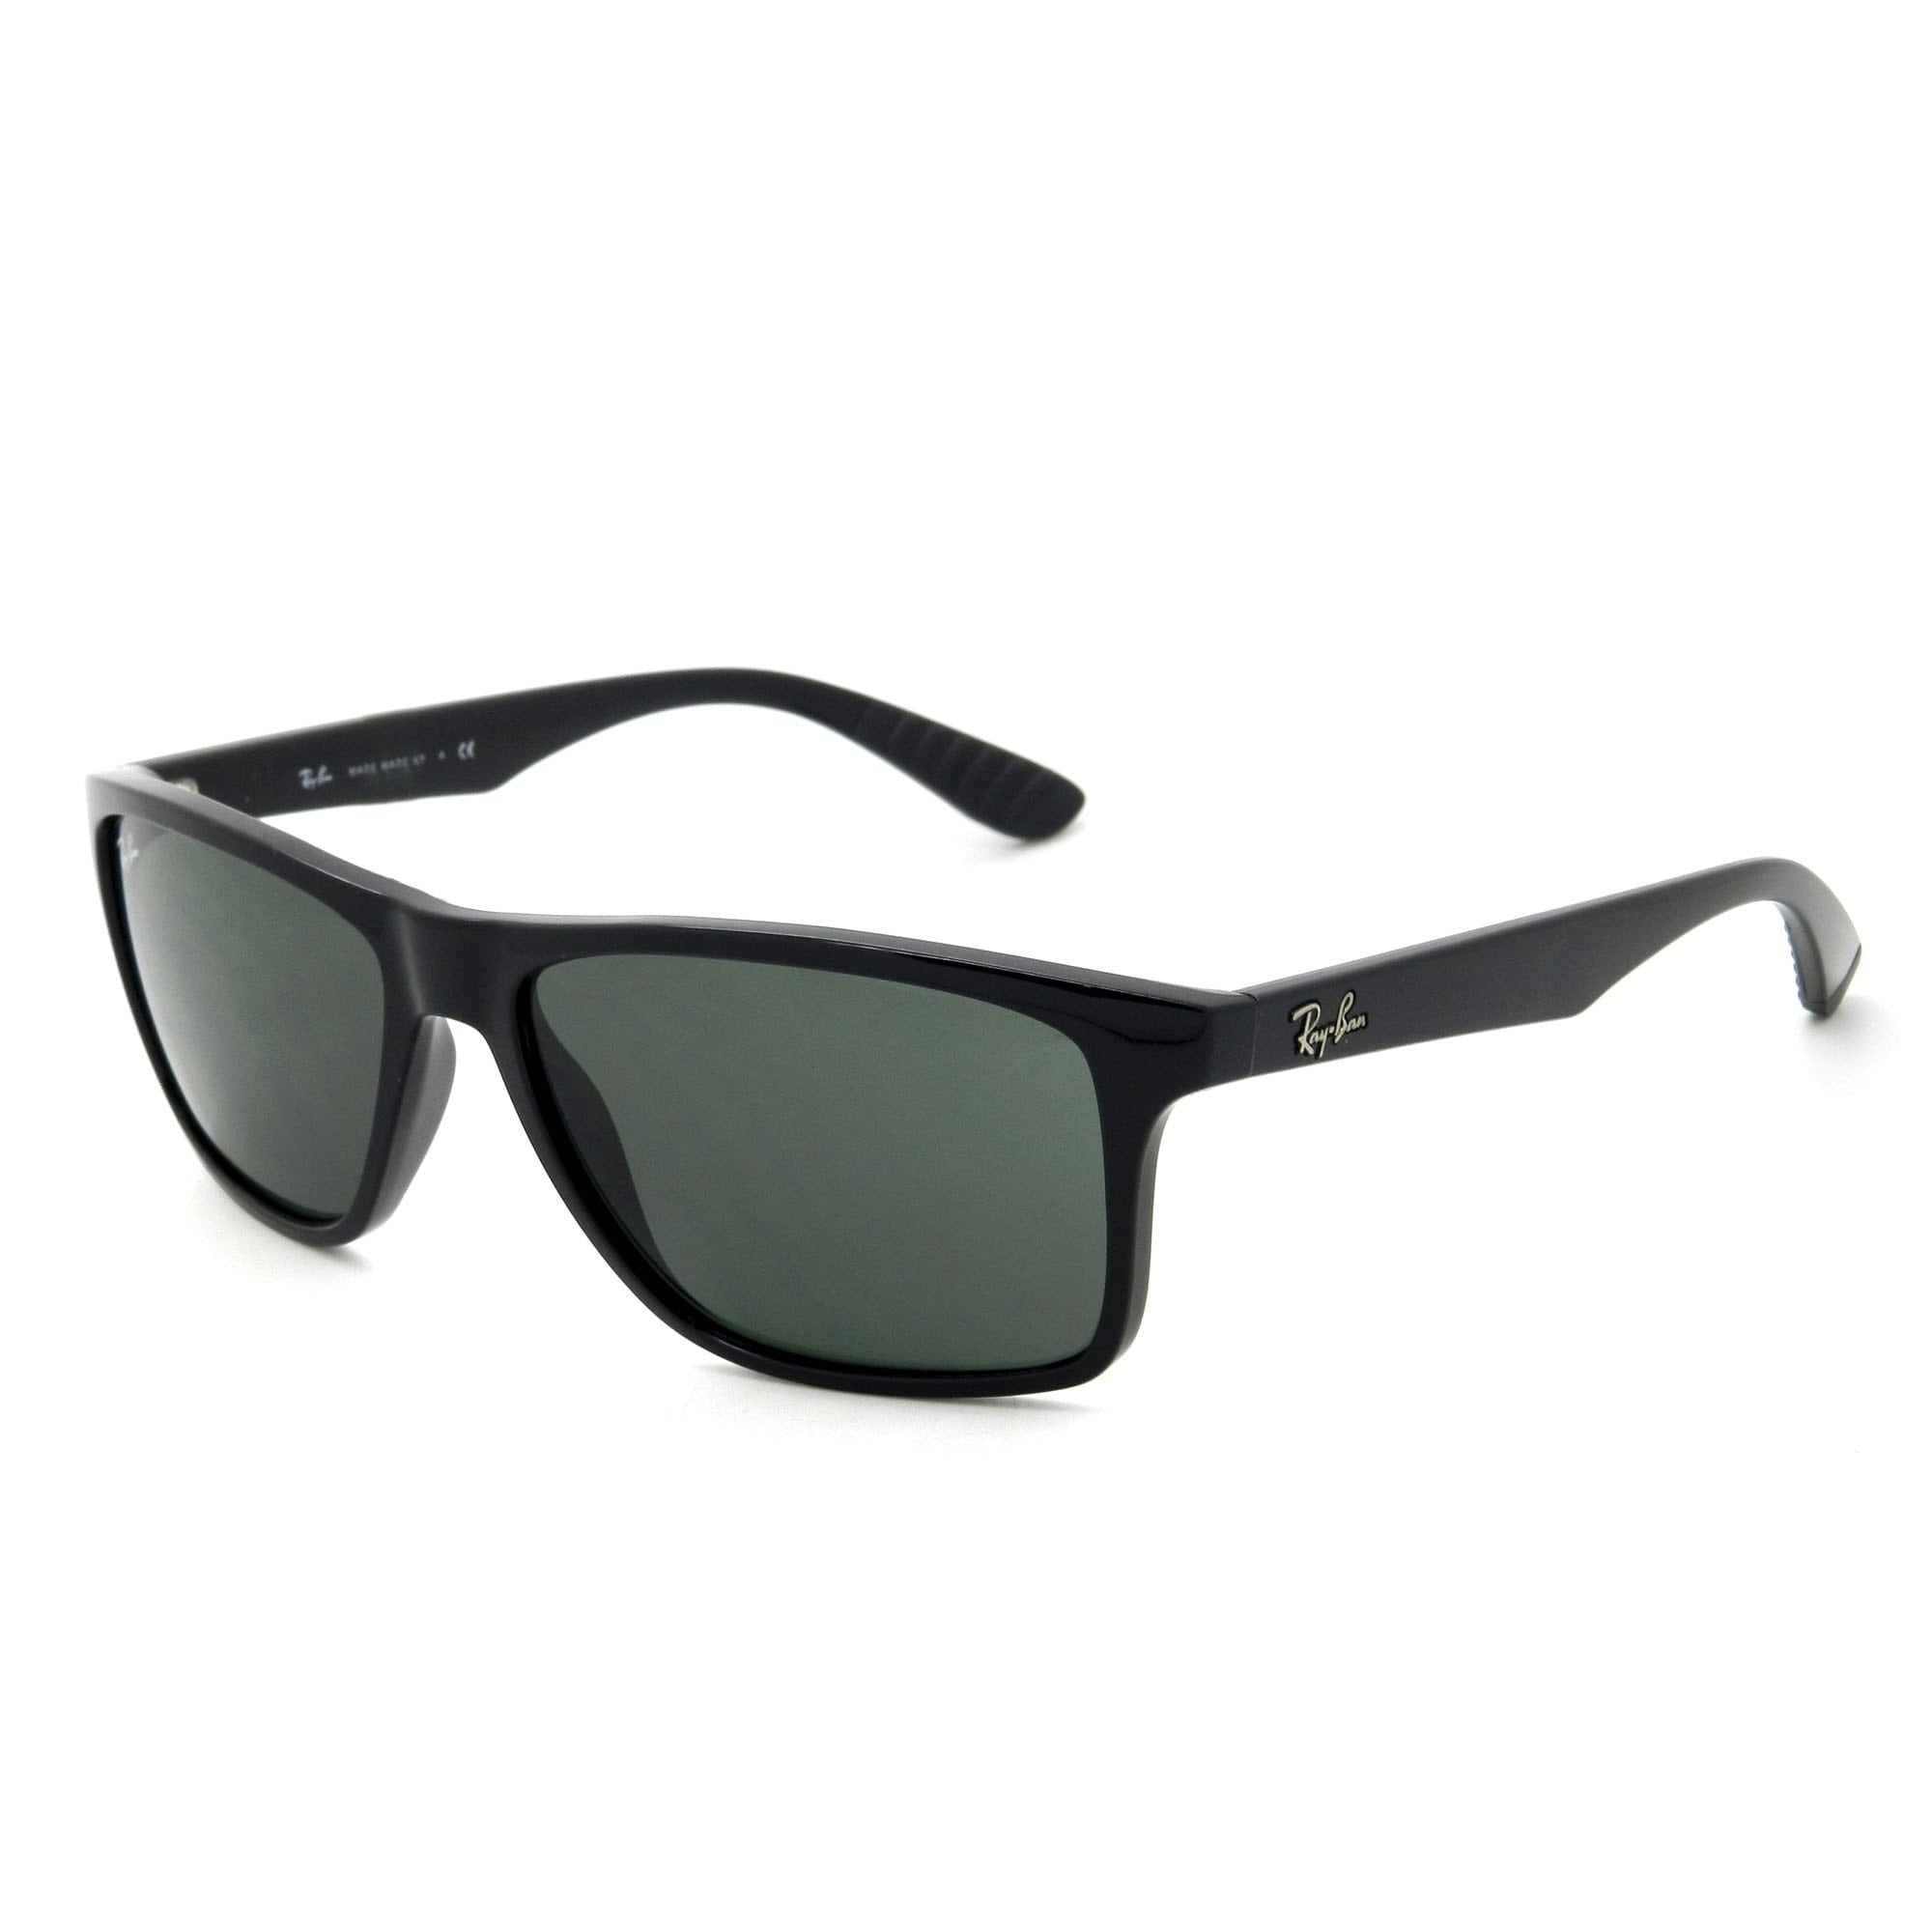 e23a471278 Shop Ray-Ban RB4234 601 71 Black Frame Green Classic 58mm Lens Sunglasses - Free  Shipping Today - Overstock - 14335564